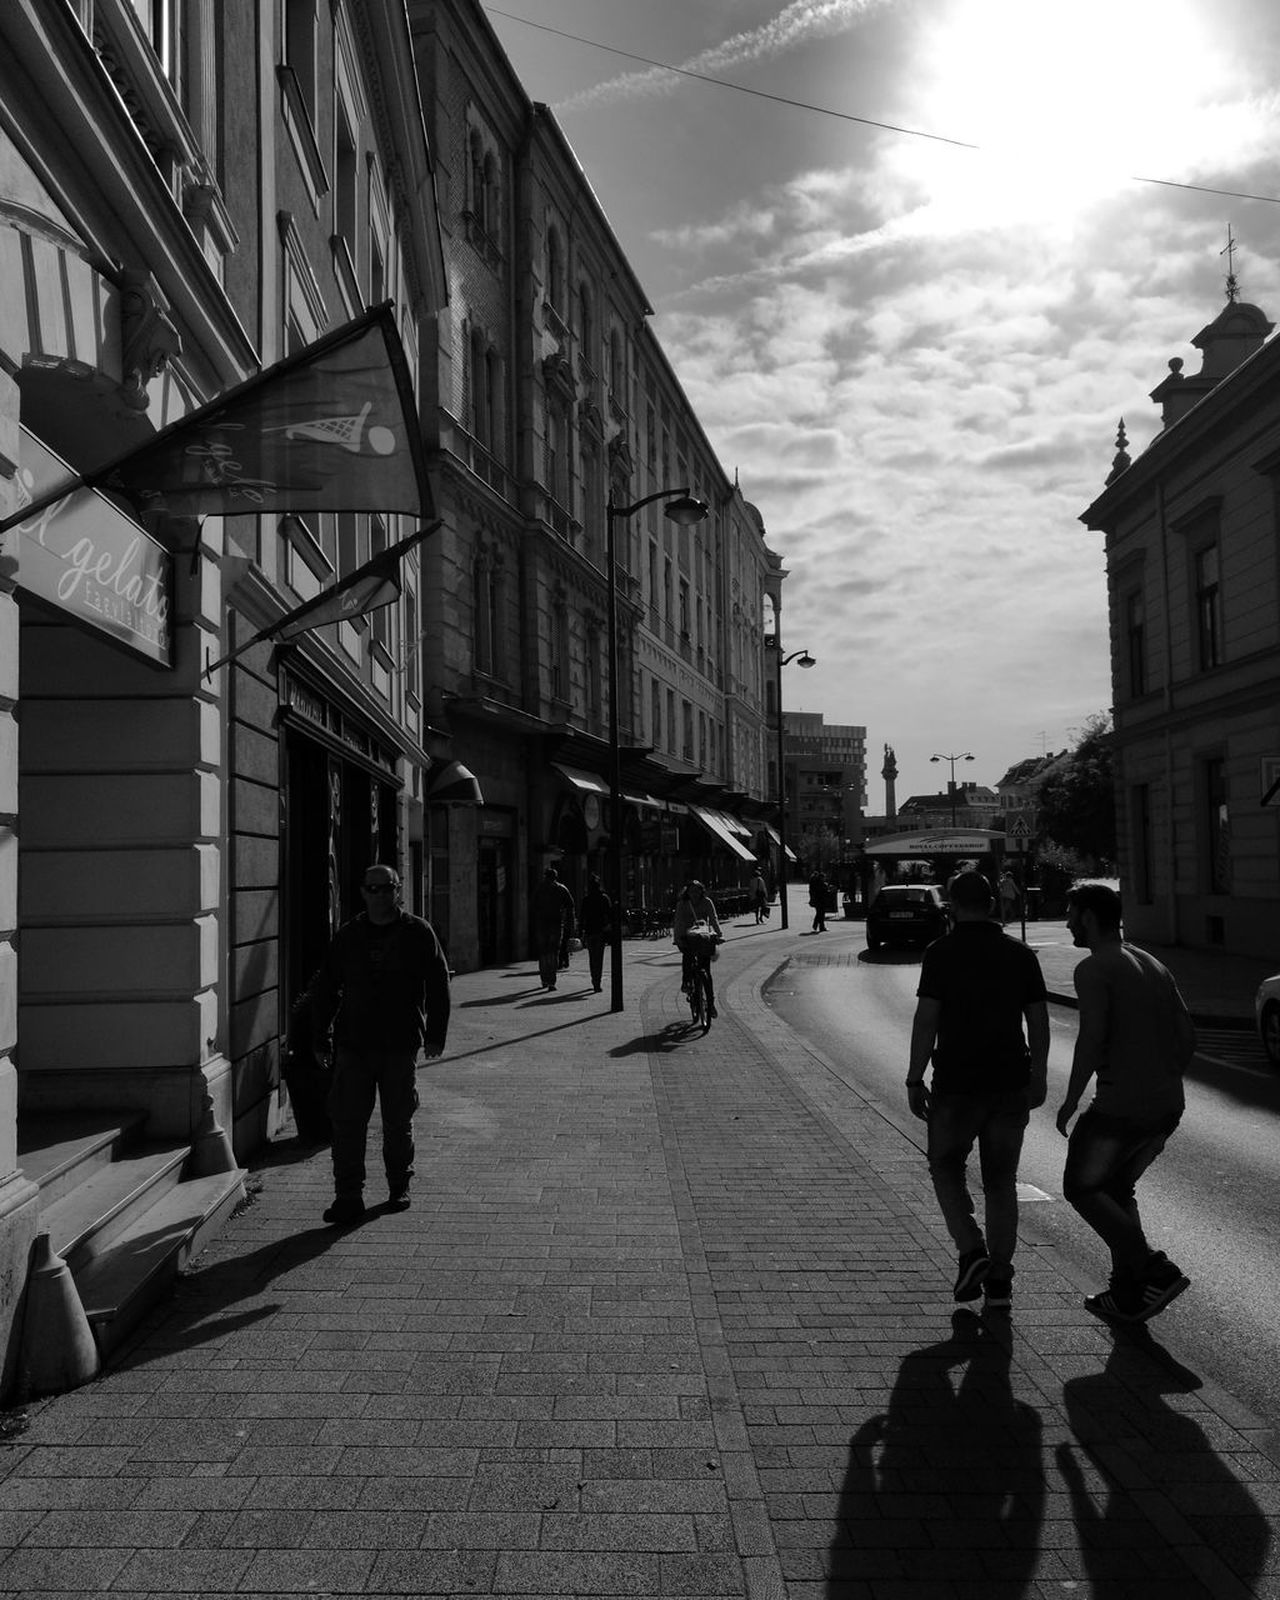 Blackandwhite Huawei P9 Leica City People Sky Streetphotography Szombathely No Edit/no Filter